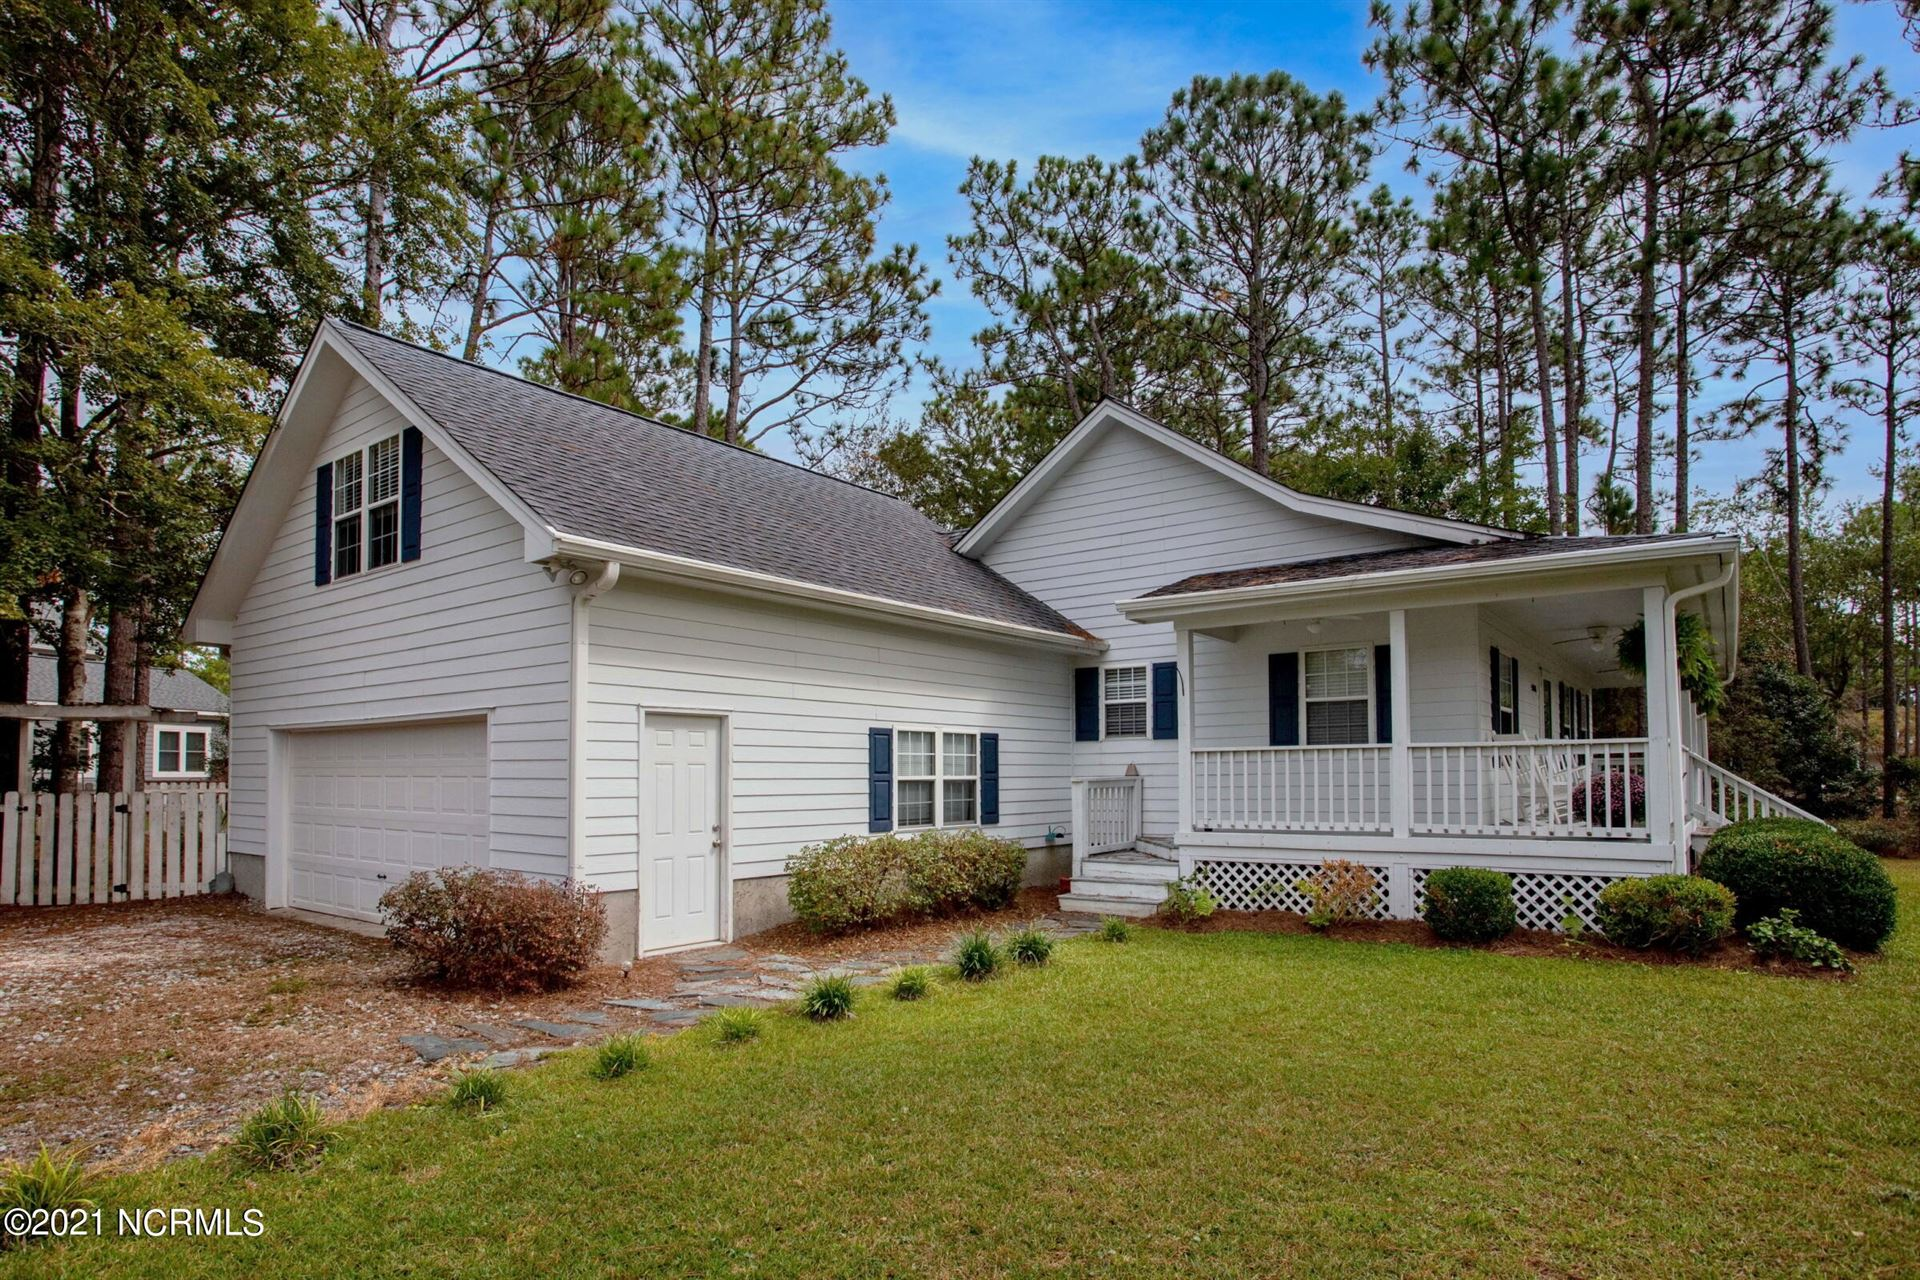 Photo of 5008 Pender Road, Shallotte, NC 28470 (MLS # 100294344)